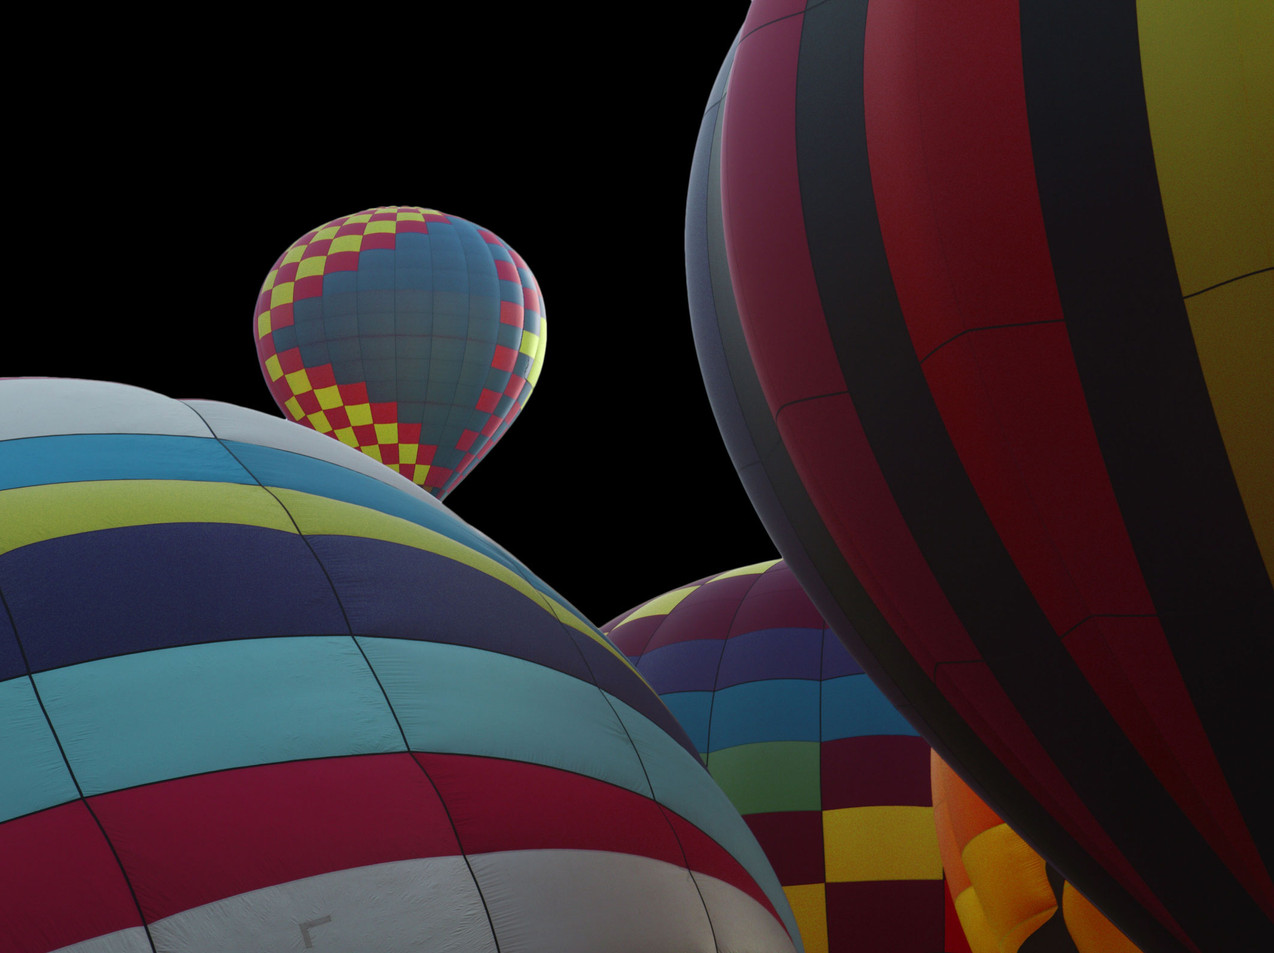 Balloons In The Blackness